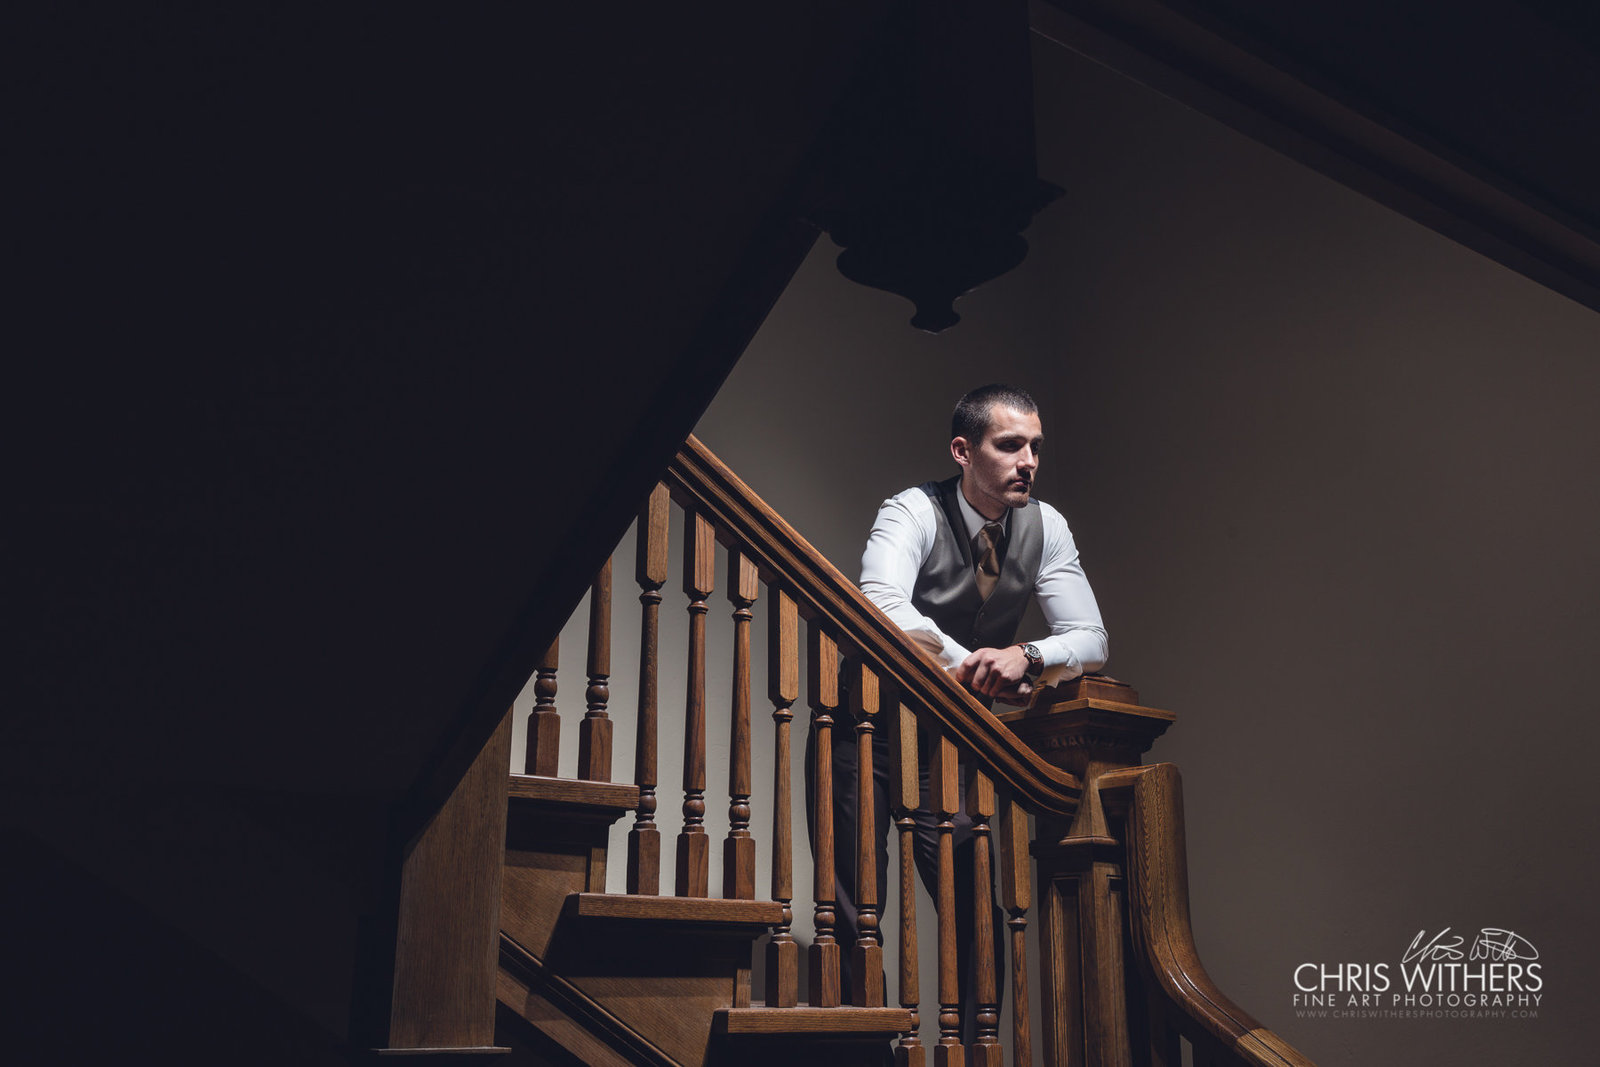 Springfield Illinois Wedding Photographer - Chris Withers Photography (141 of 159)